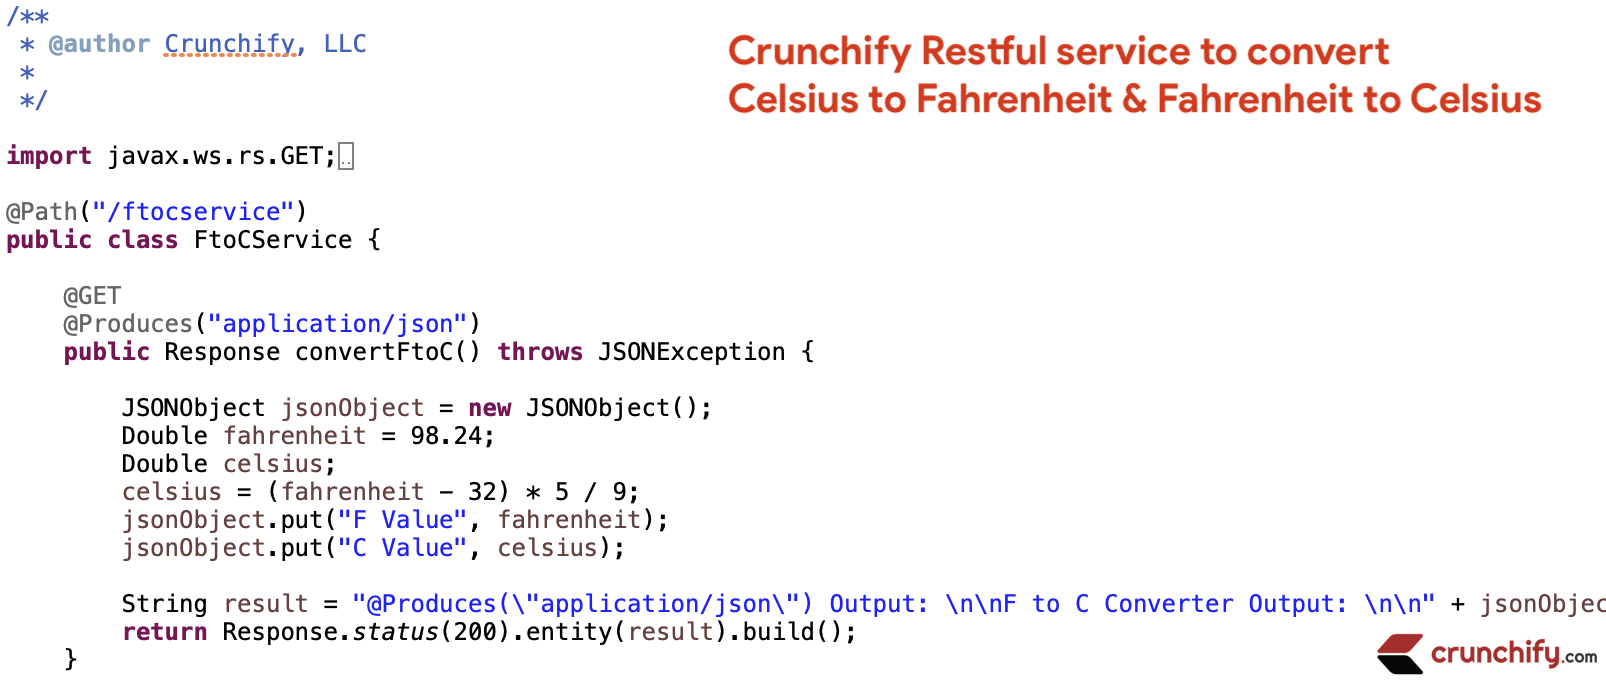 Crunchify Restful service to convert Celsius to Fahrenheit & Fahrenheit to Celsius